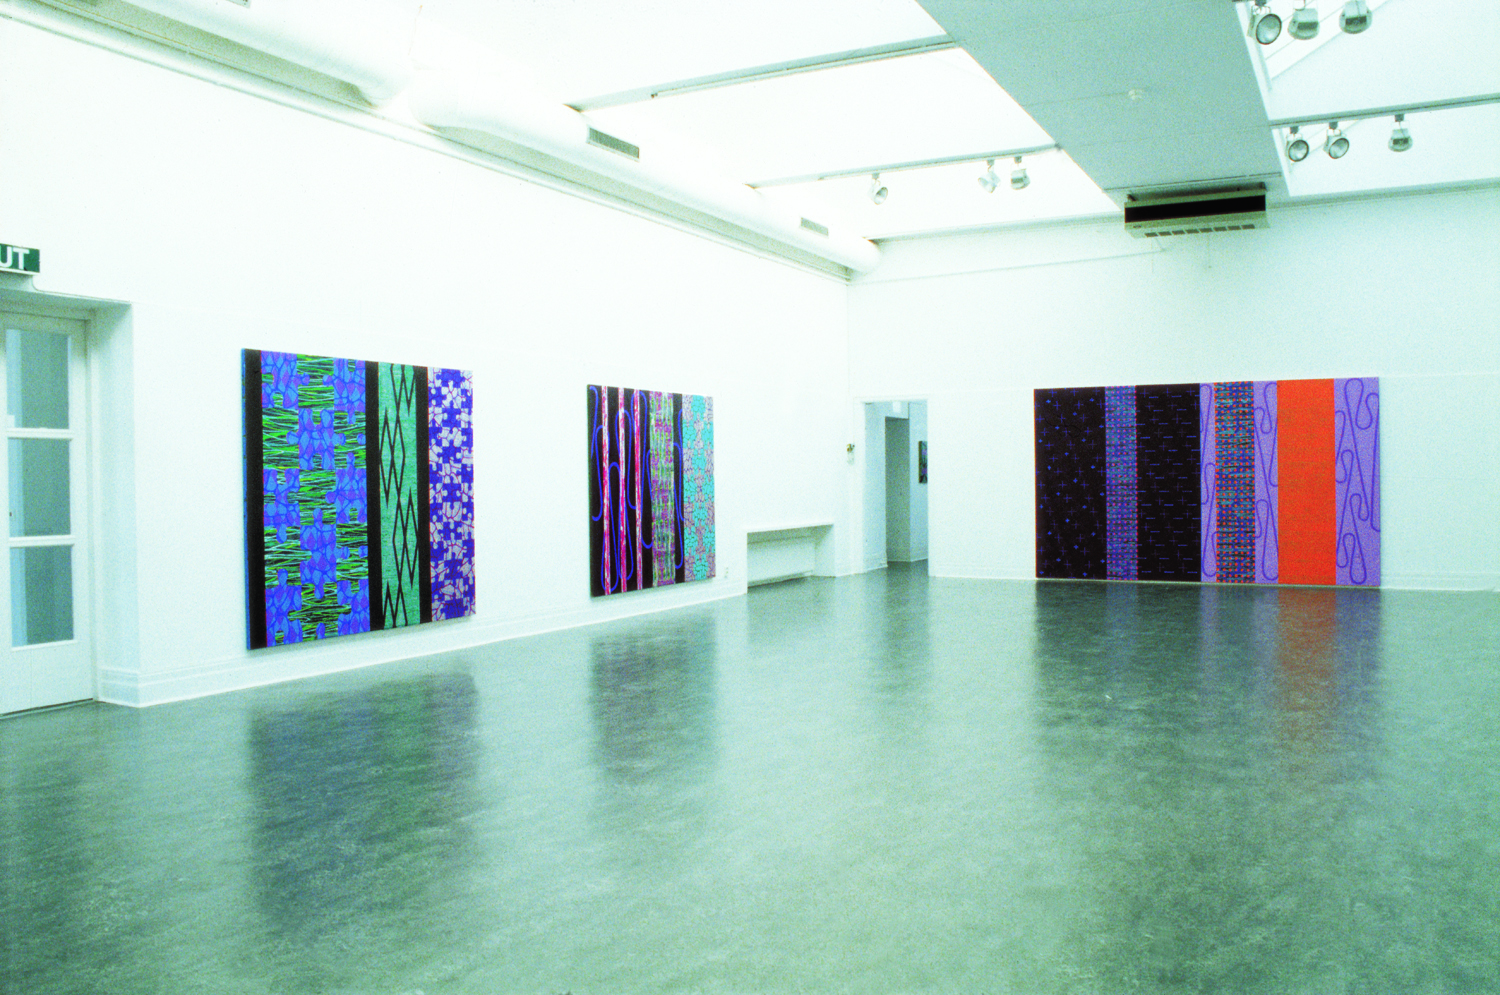 14 B Installation view_Ystads Art Museum Sweden 1997.jpg